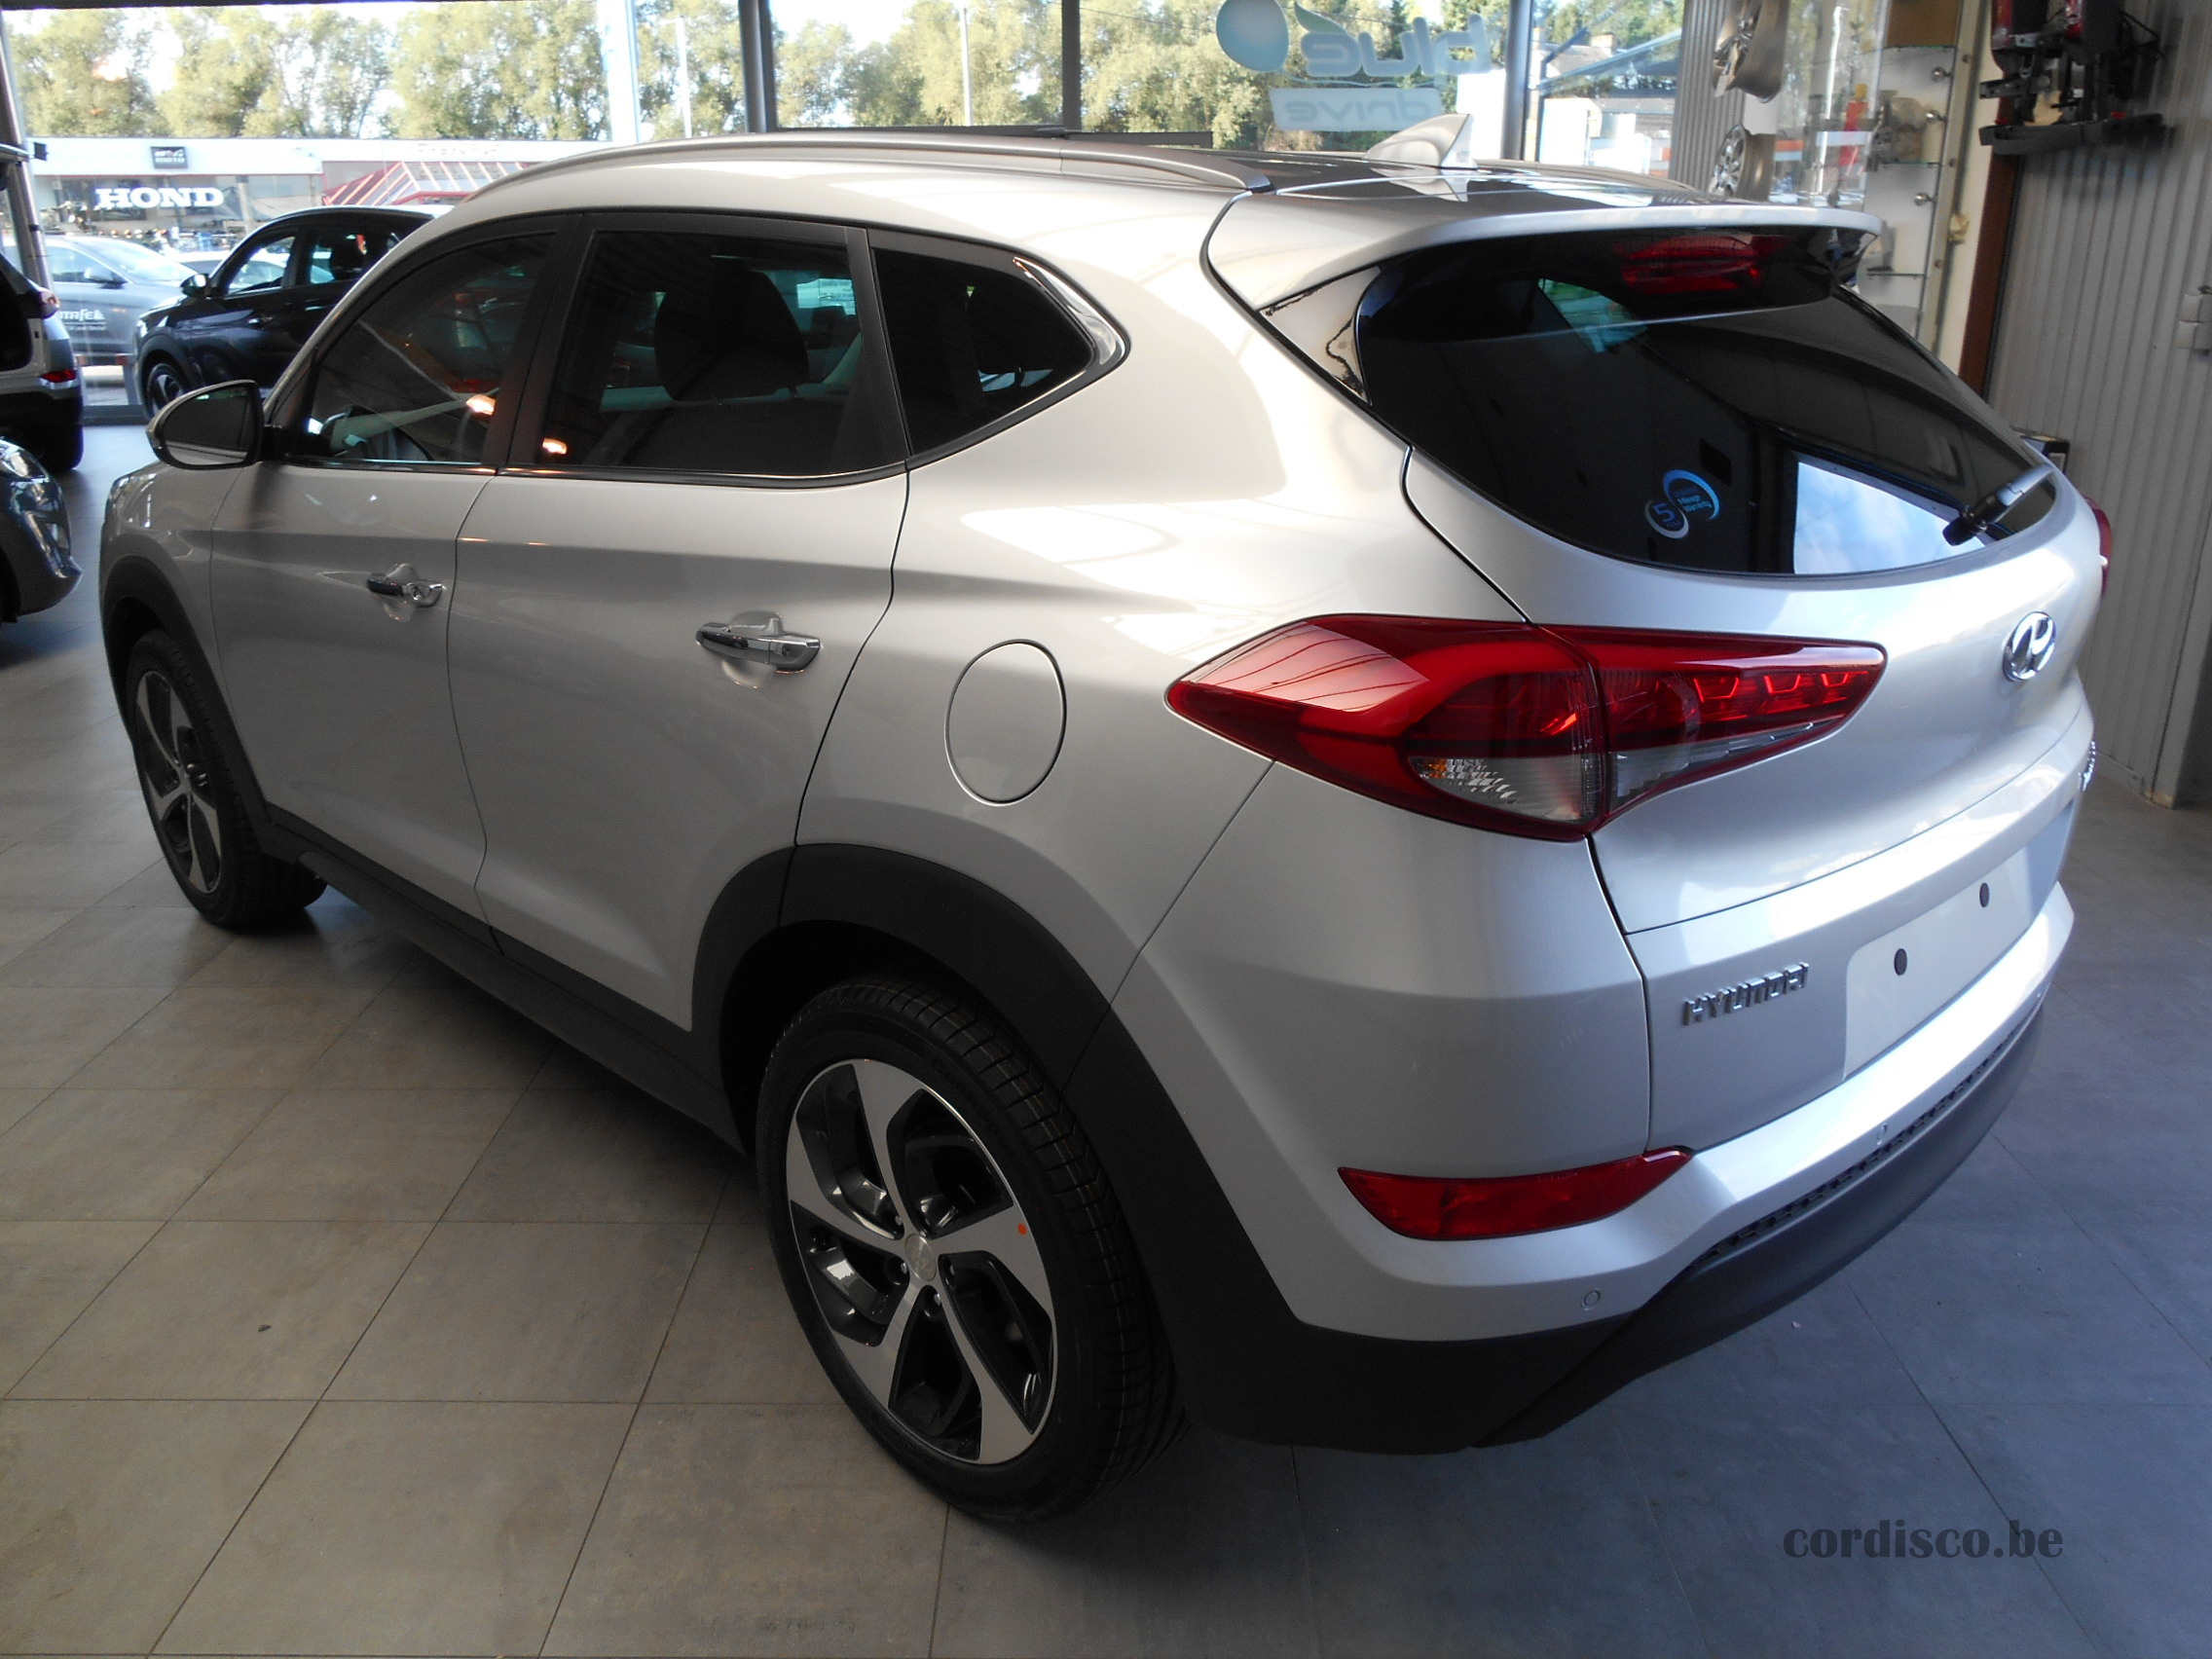 Hyundai tucson garage cordisco for Garage hyundai narbonne